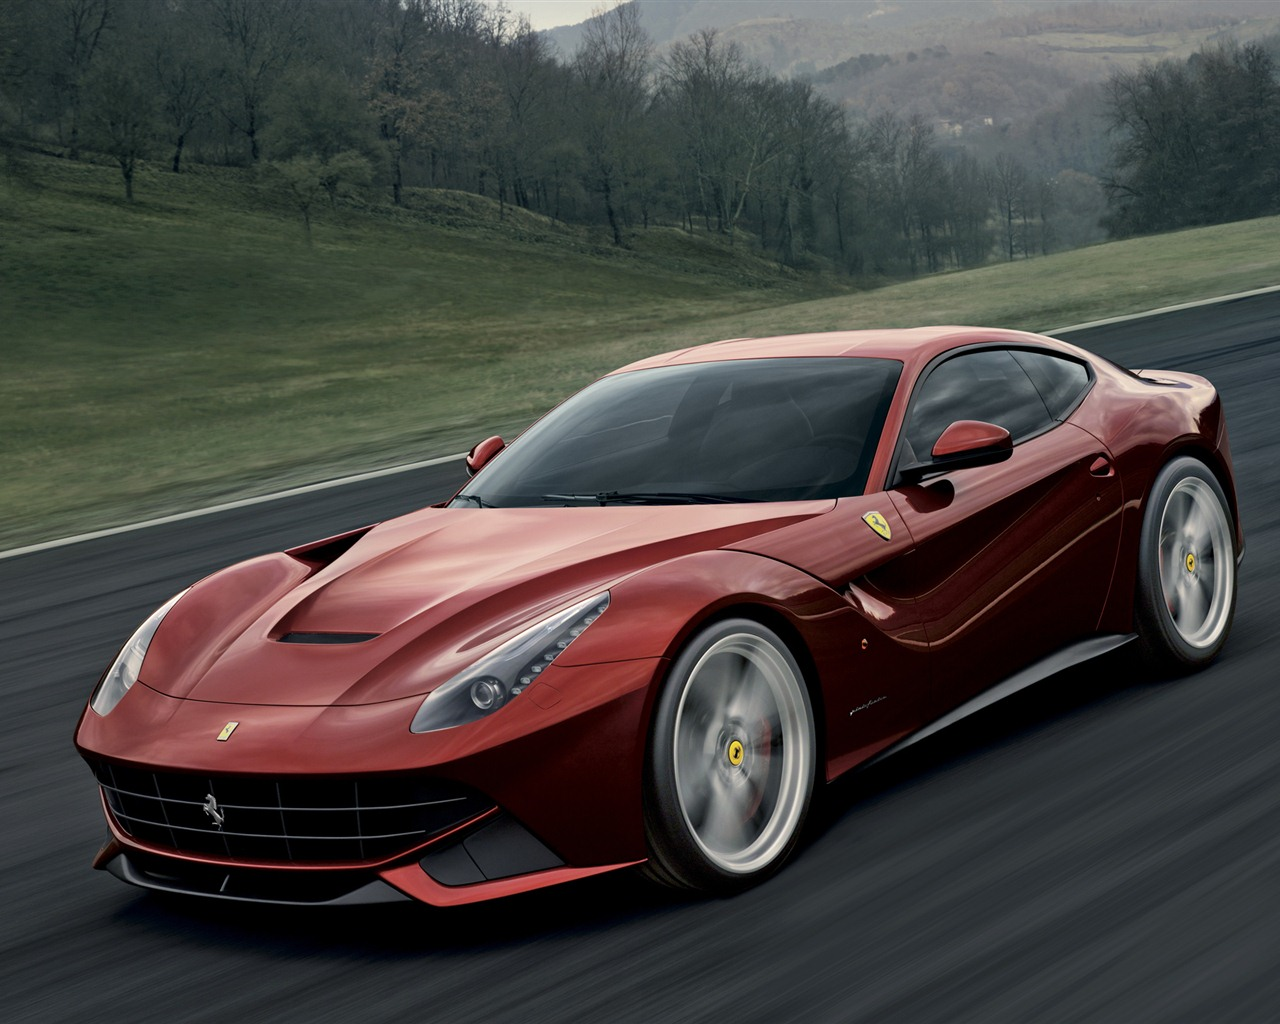 2013 ferrari f12 berlinetta hd wallpaper wallpaper